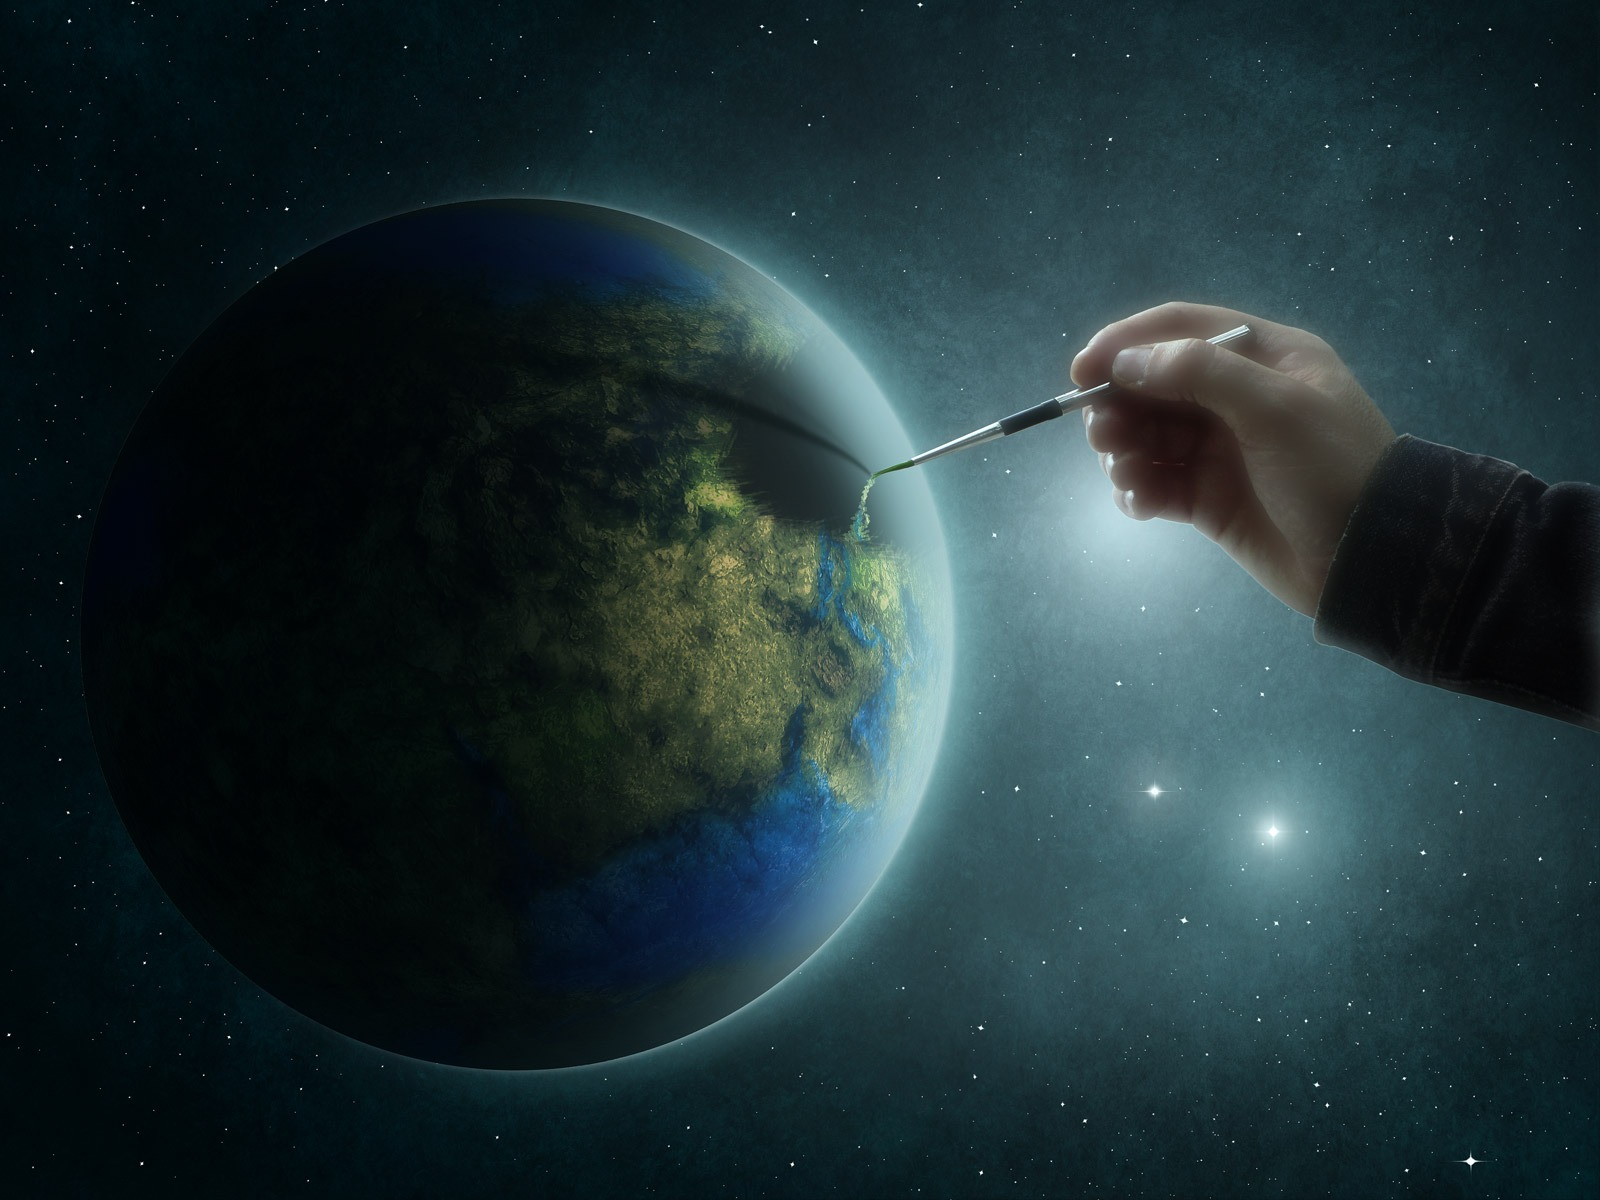 painting_the_earth